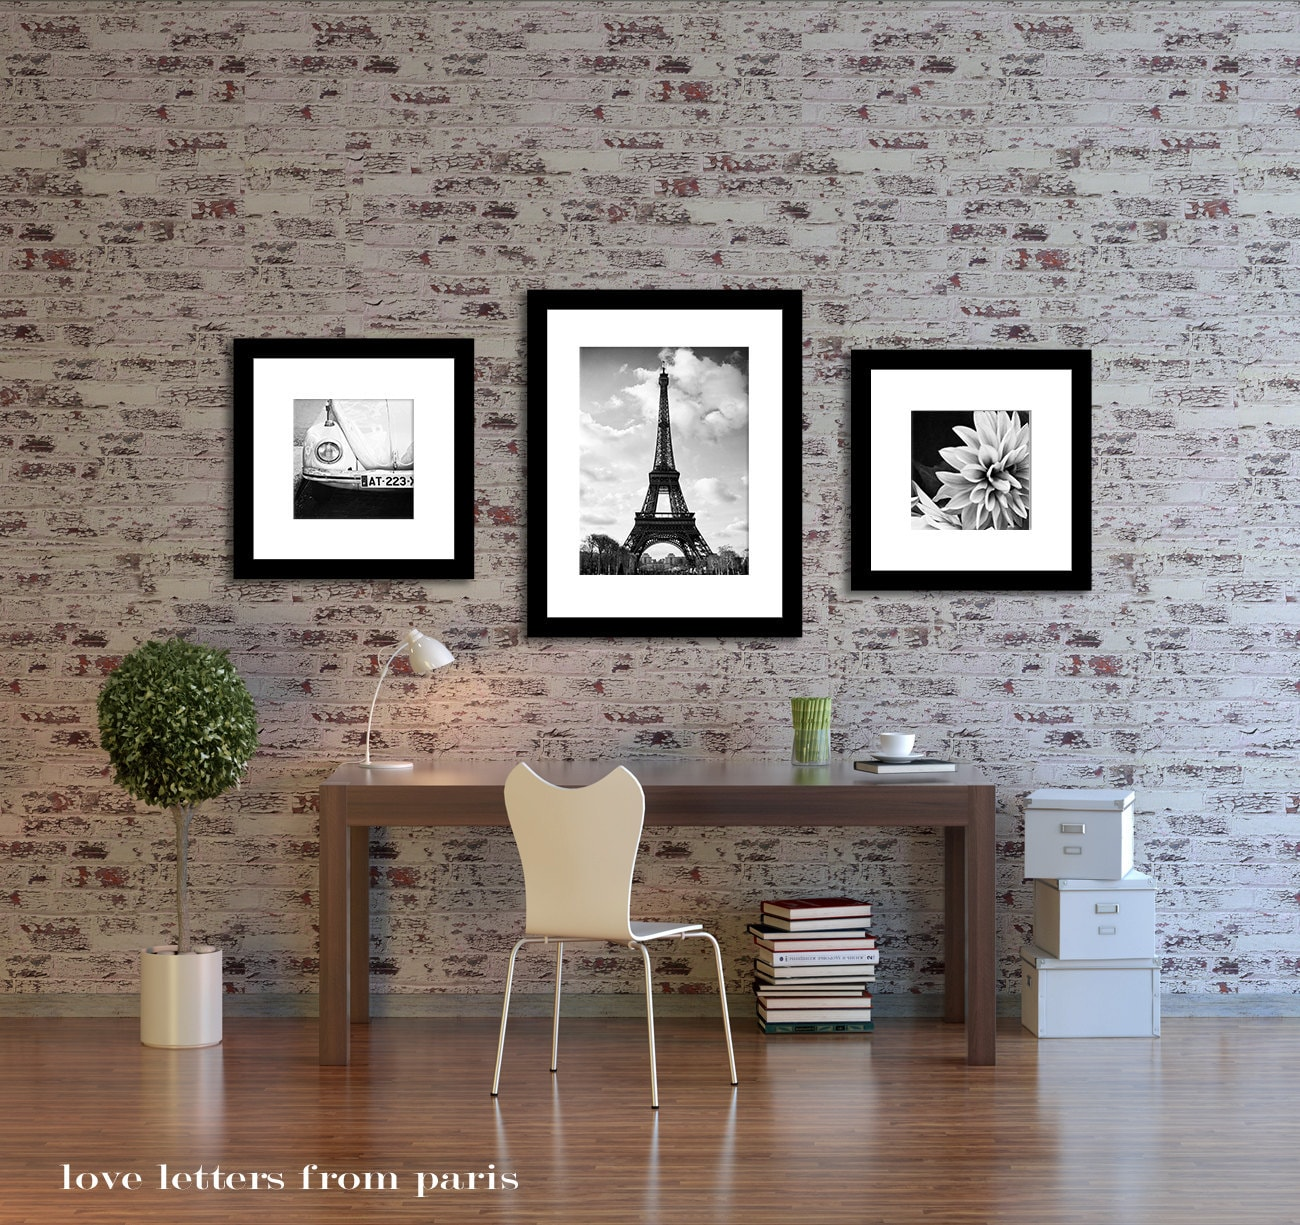 Paris photograph home decor paris wall art paris by for House decorations items